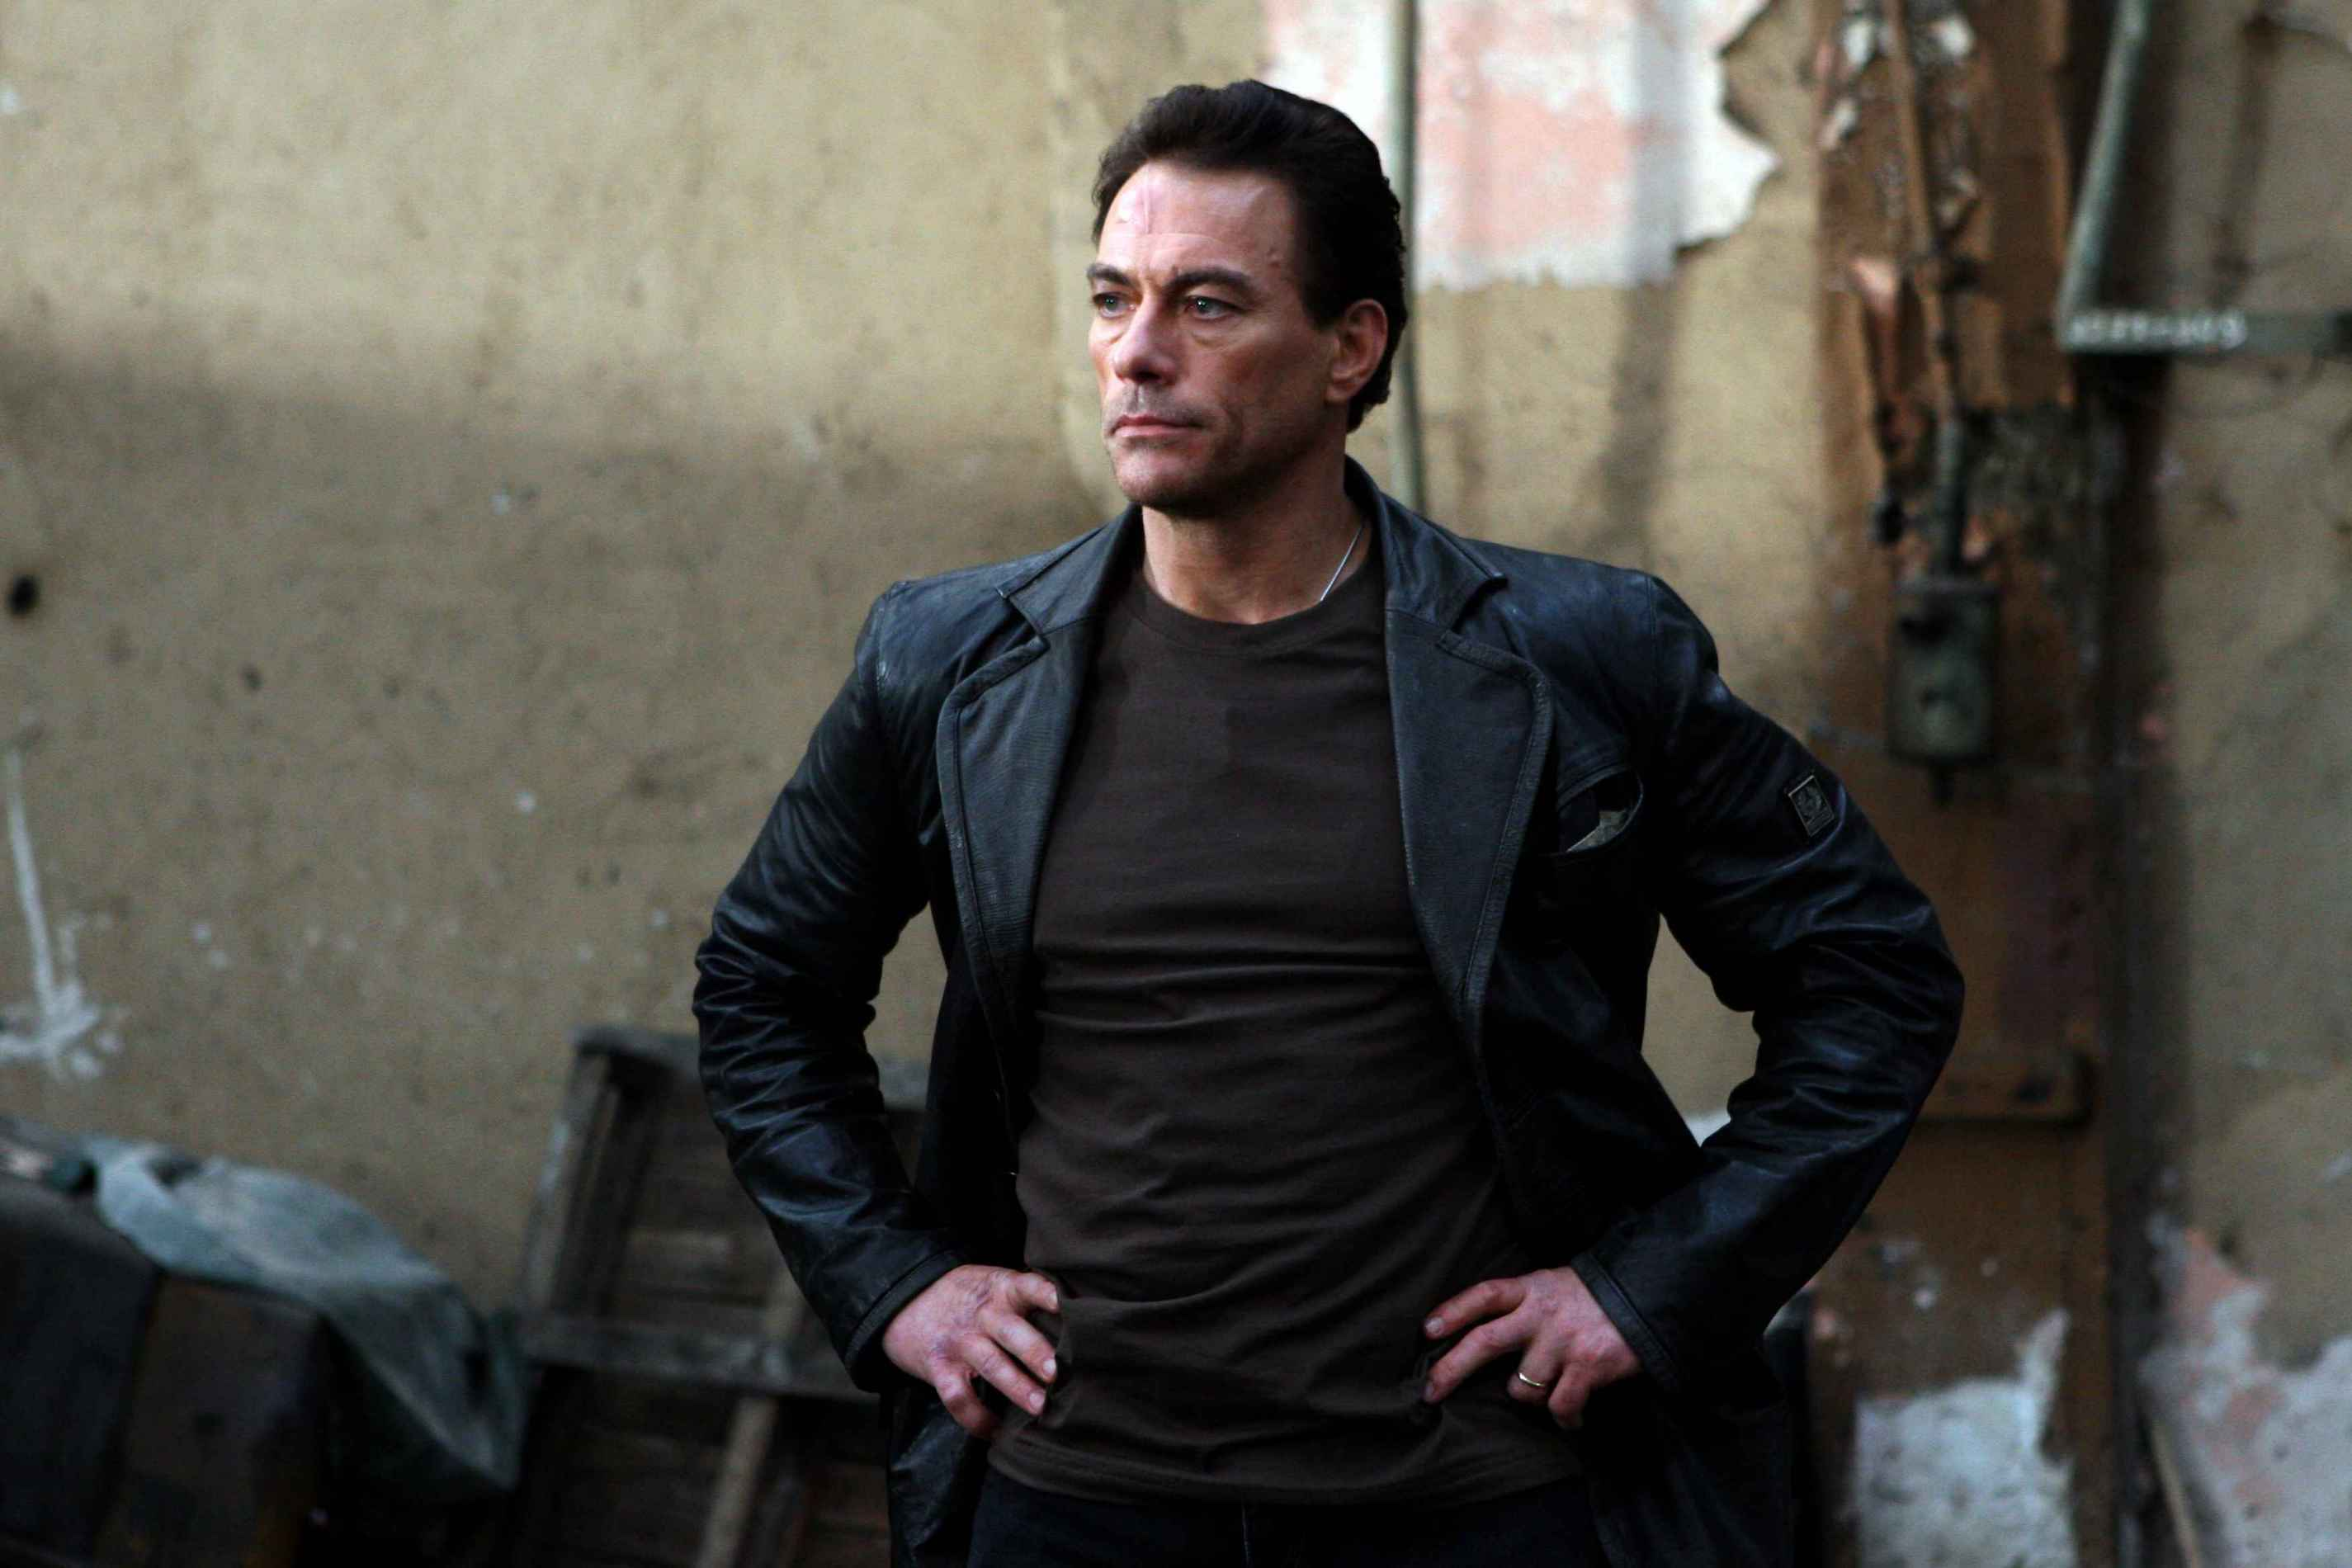 Profiles in Bad-Ass #5: Jean-Claude Van Damme, Part Two